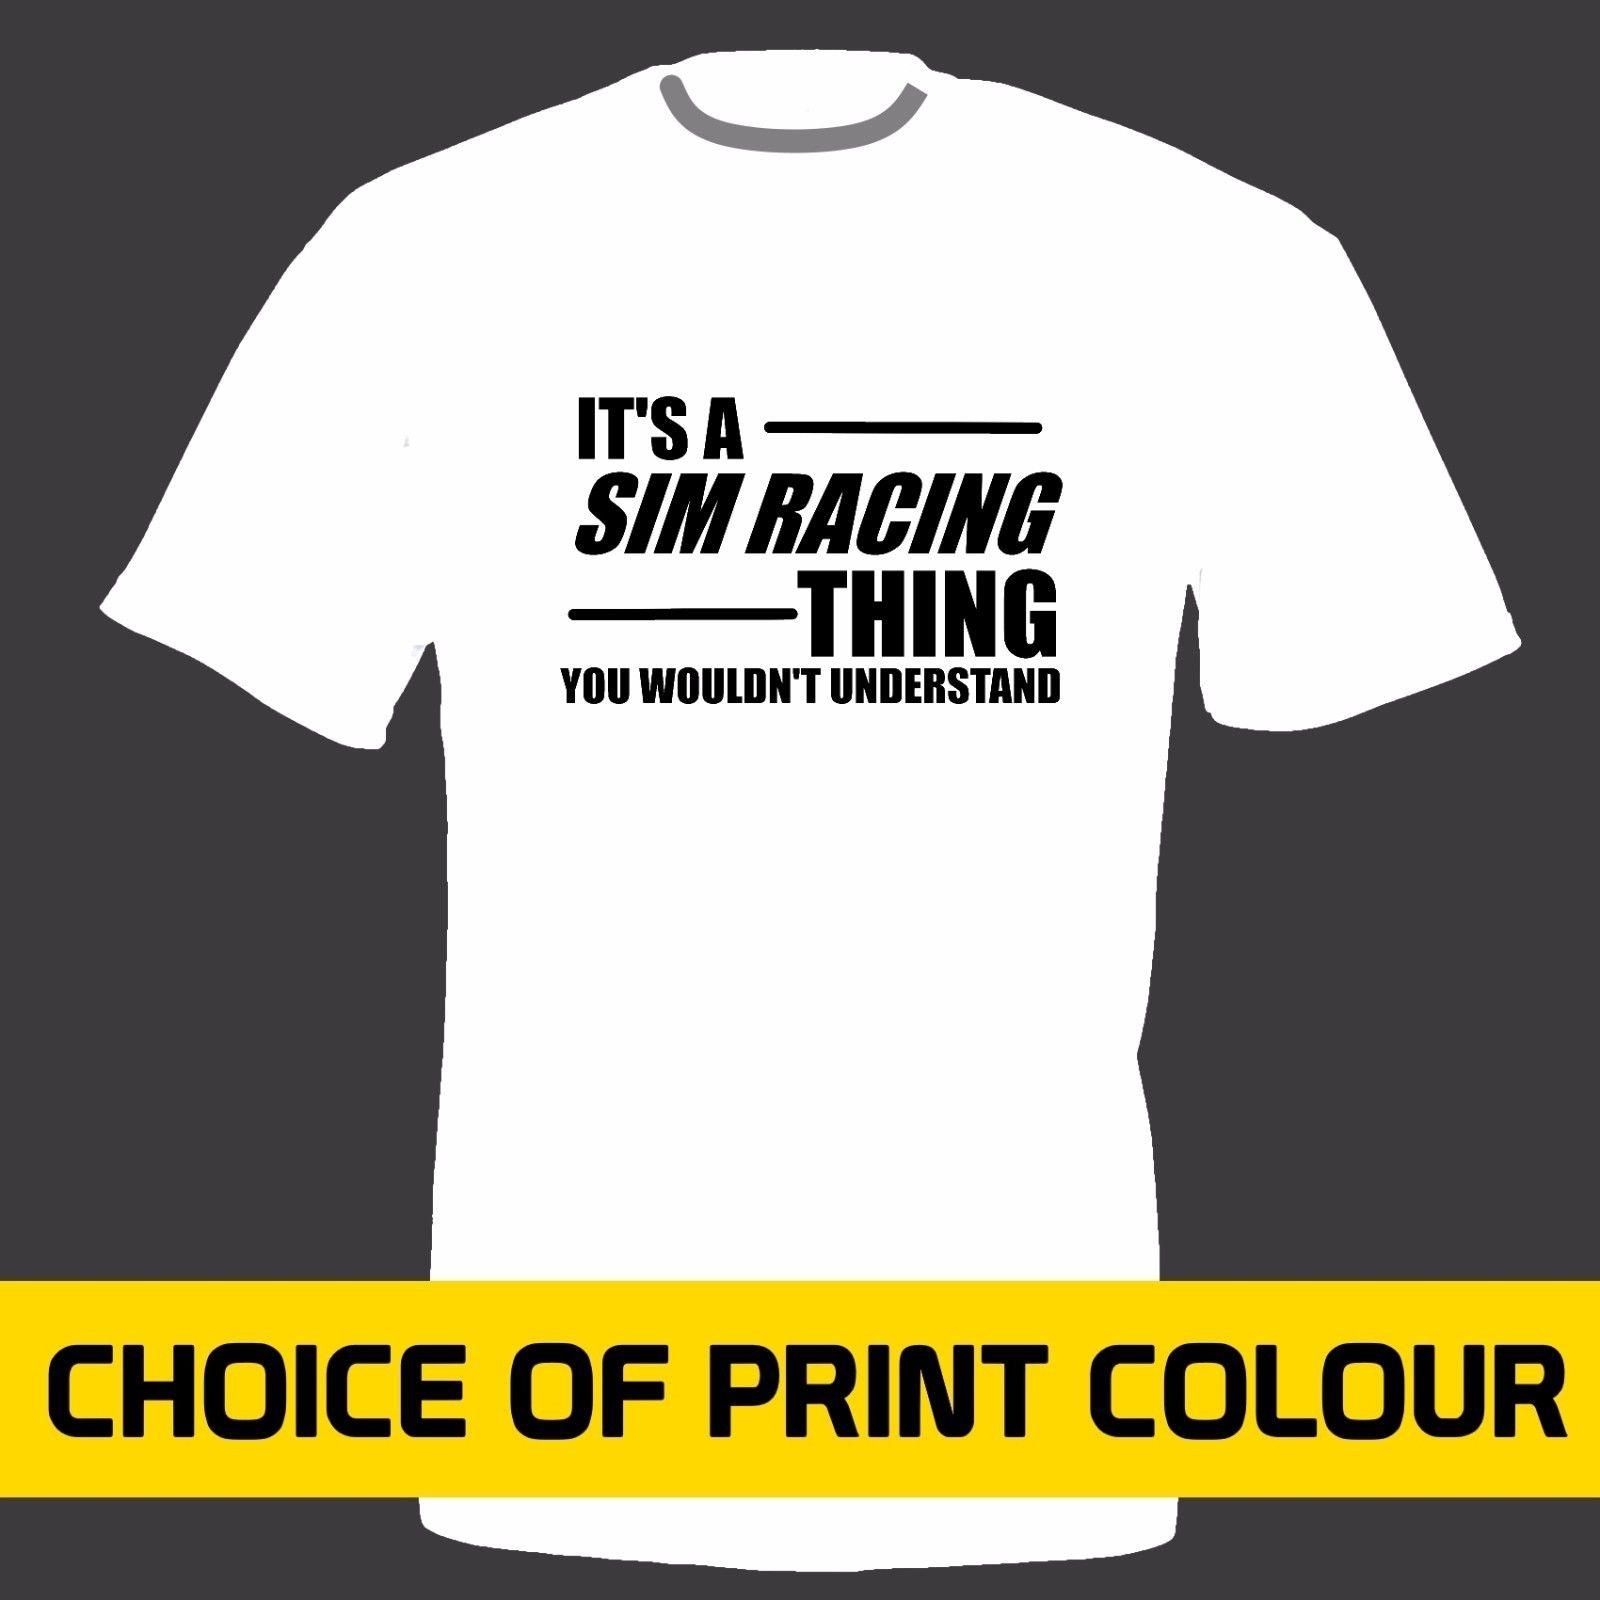 c388de94 Sim Racing T Shirt Funny Gift Dad Car Humor Brother Son Racer New Tee Funny  Unisex Casual T Shirt 1 1 T Shirt From Fantees, $12.96| DHgate.Com